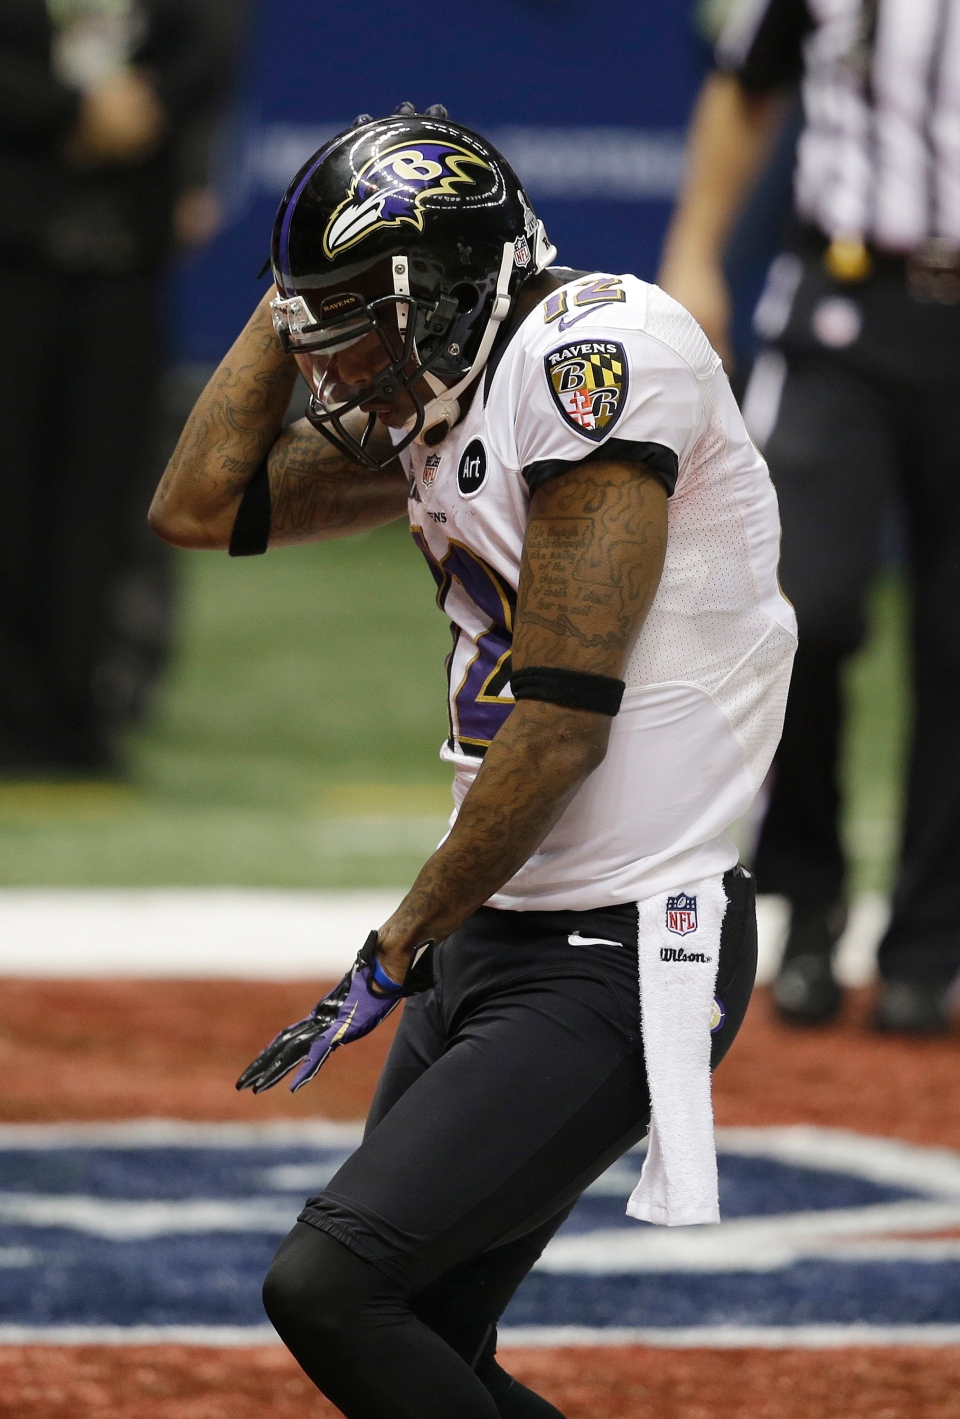 In this Feb. 2, 2013 file photo, Baltimore Ravens wide receiver Jacoby Jones (12) dances after scoring a touchdown against the San Francisco 49ers in Super Bowl XLVII in New Orleans. (AP Photo/Elaine Thompson, File)